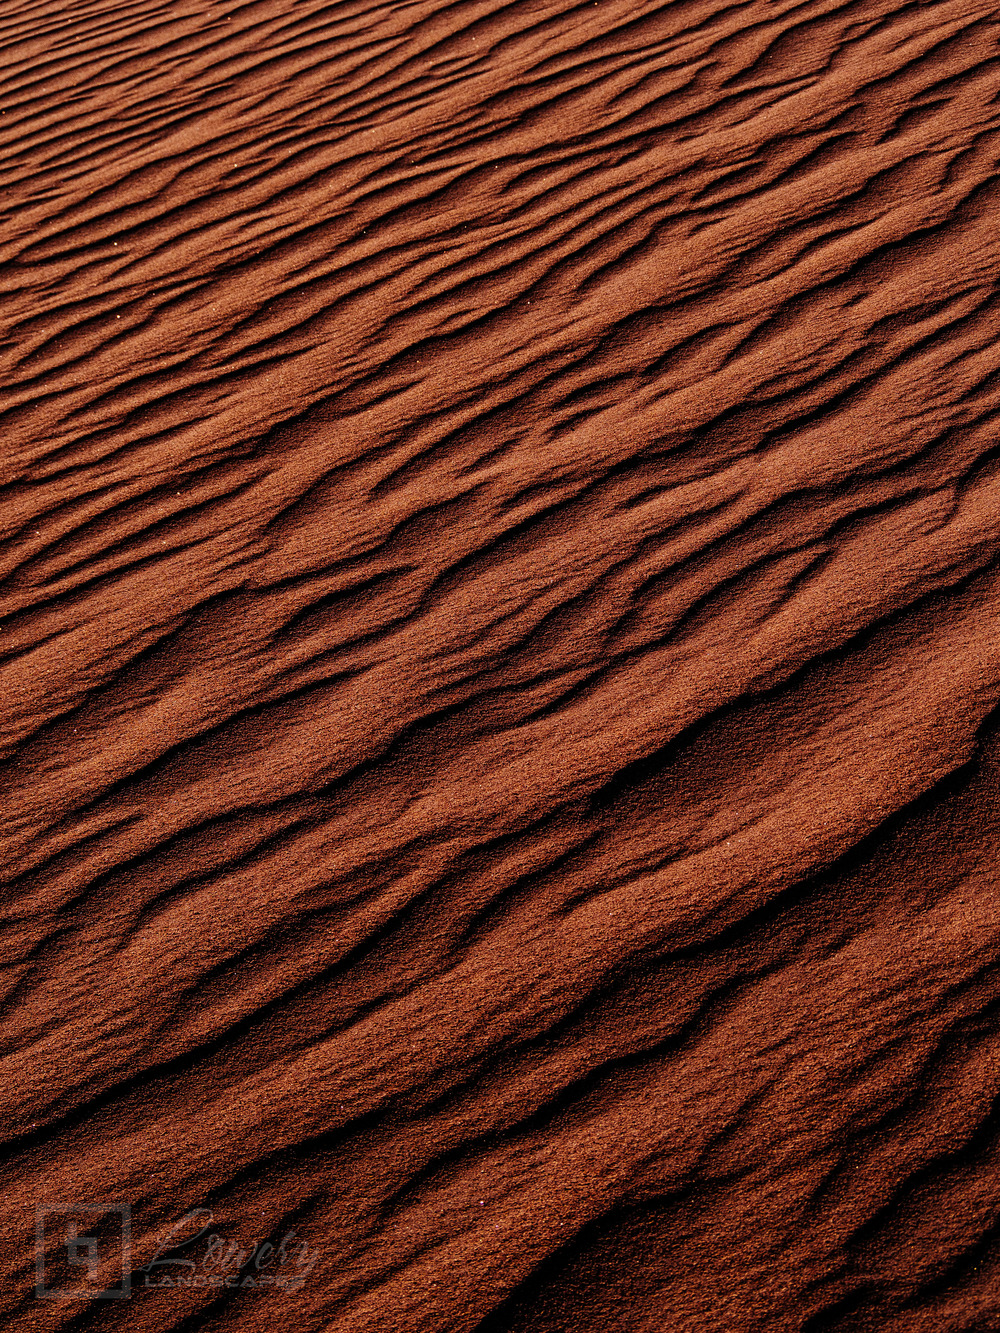 """Abstraction in Sand #1"" [click/tap to enlarge]"